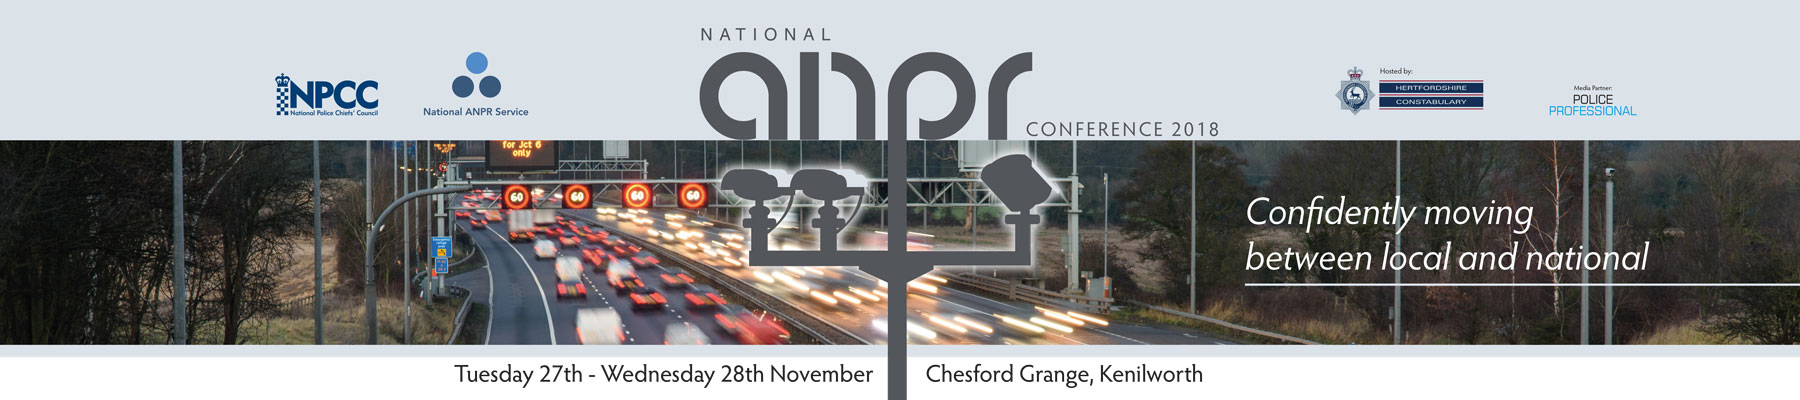 National ANPR Conference 2018